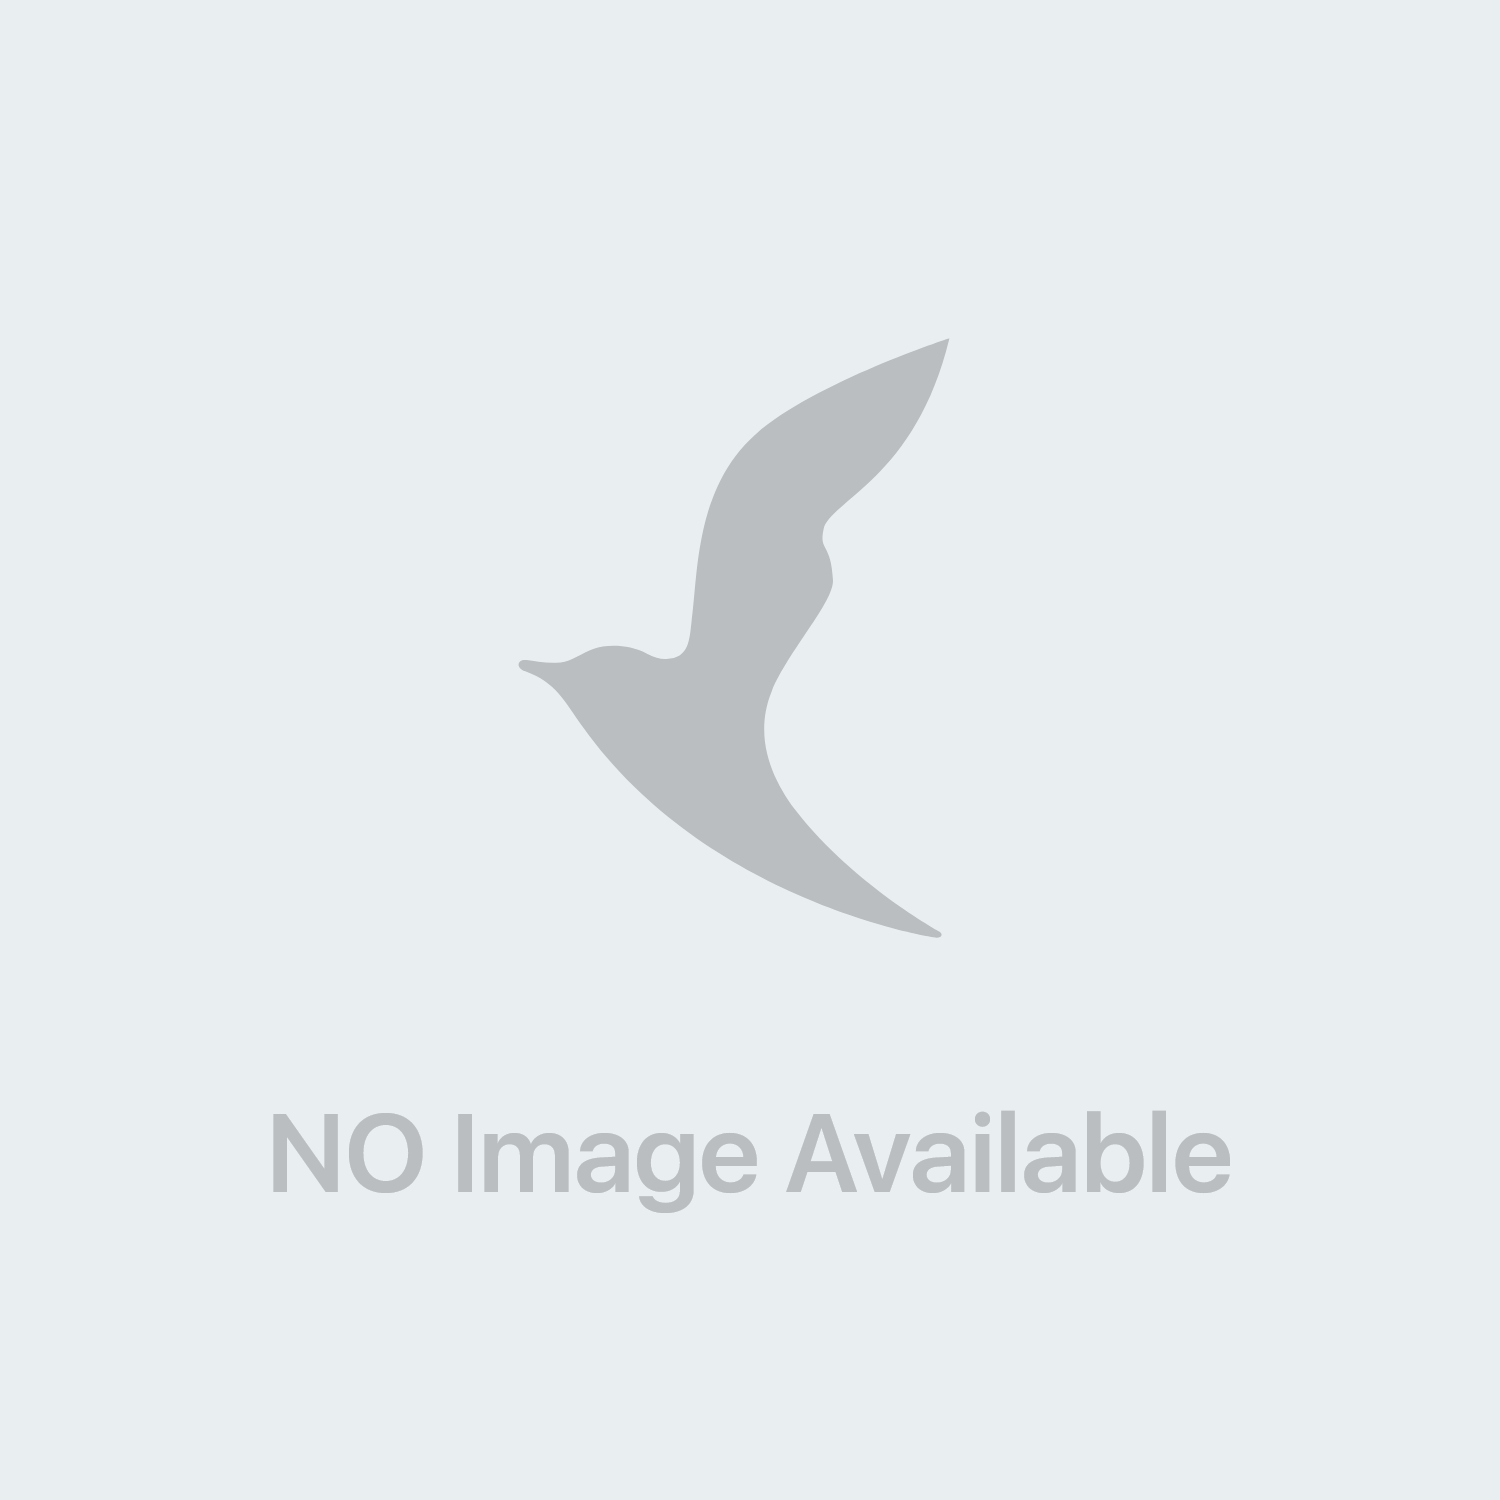 Royal Canine Light 40 Alimento Secco Gatti 400 Gr